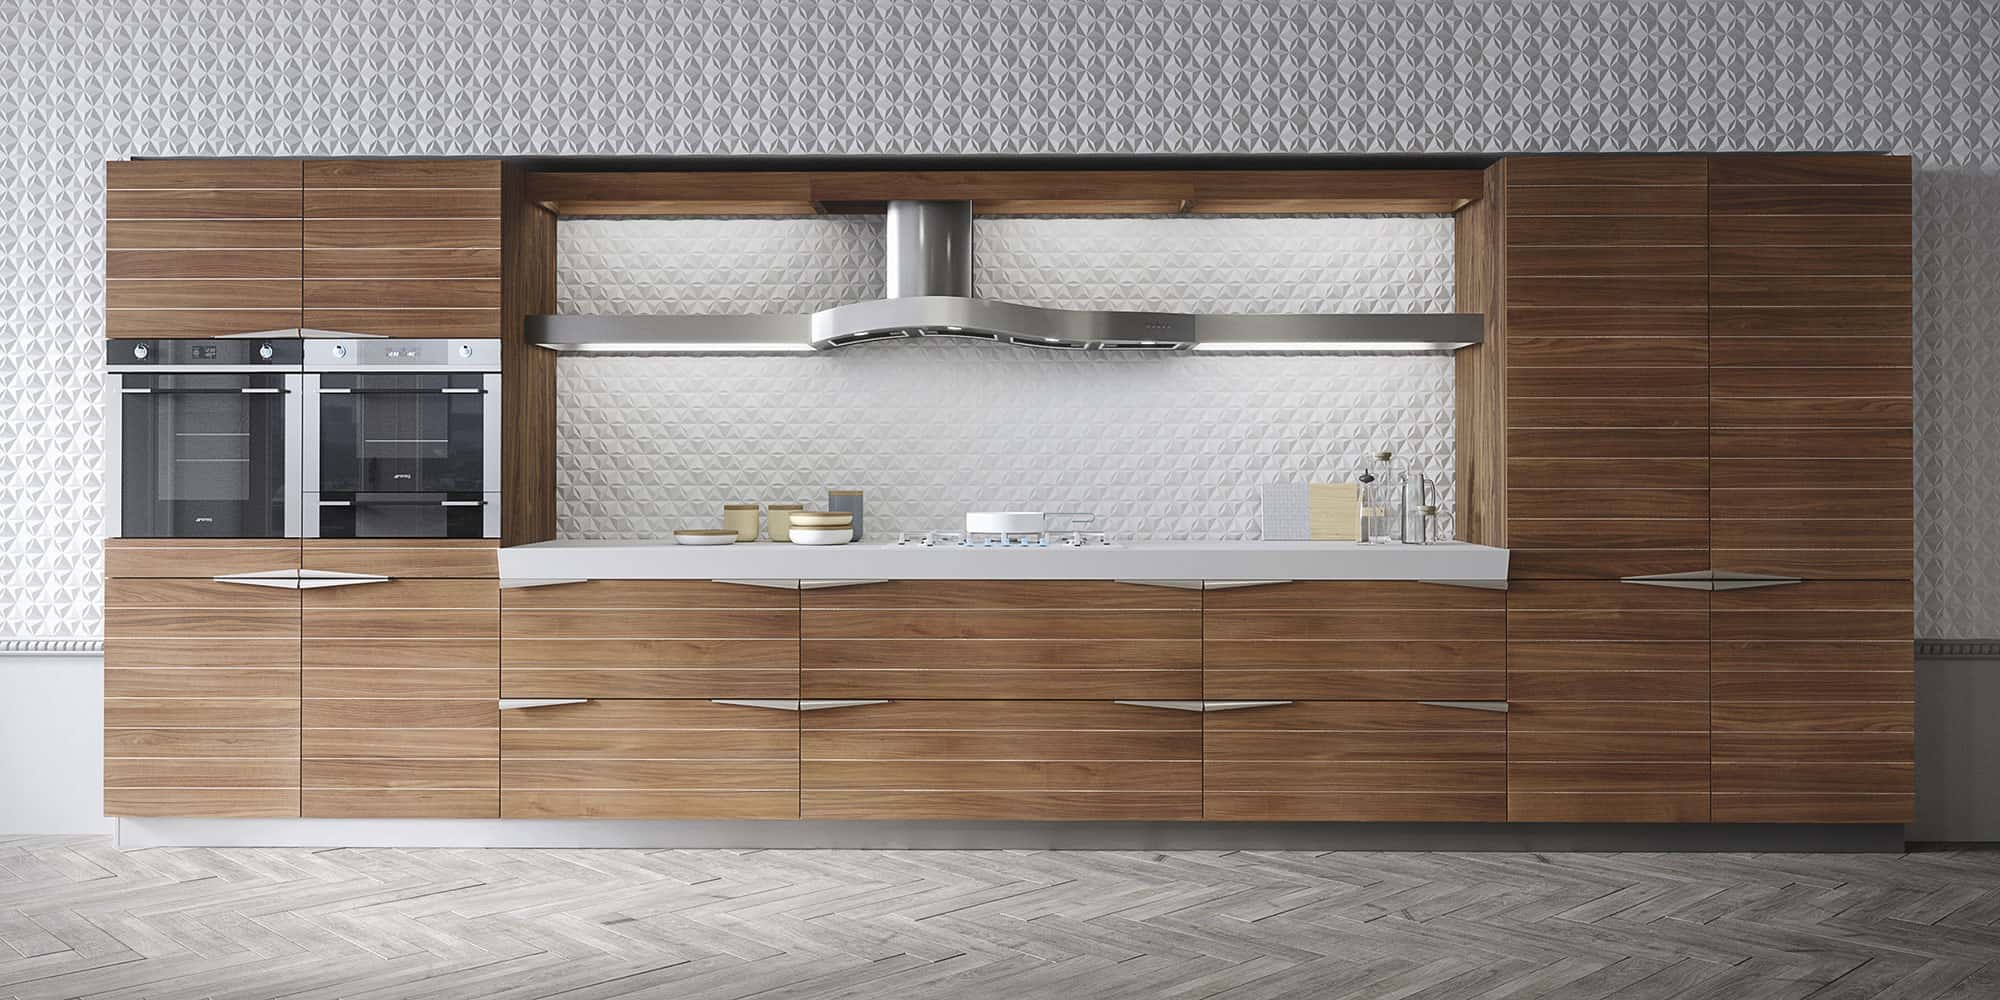 Cucina In Teak Time Kitchen By Snaidero In Timeless Teak